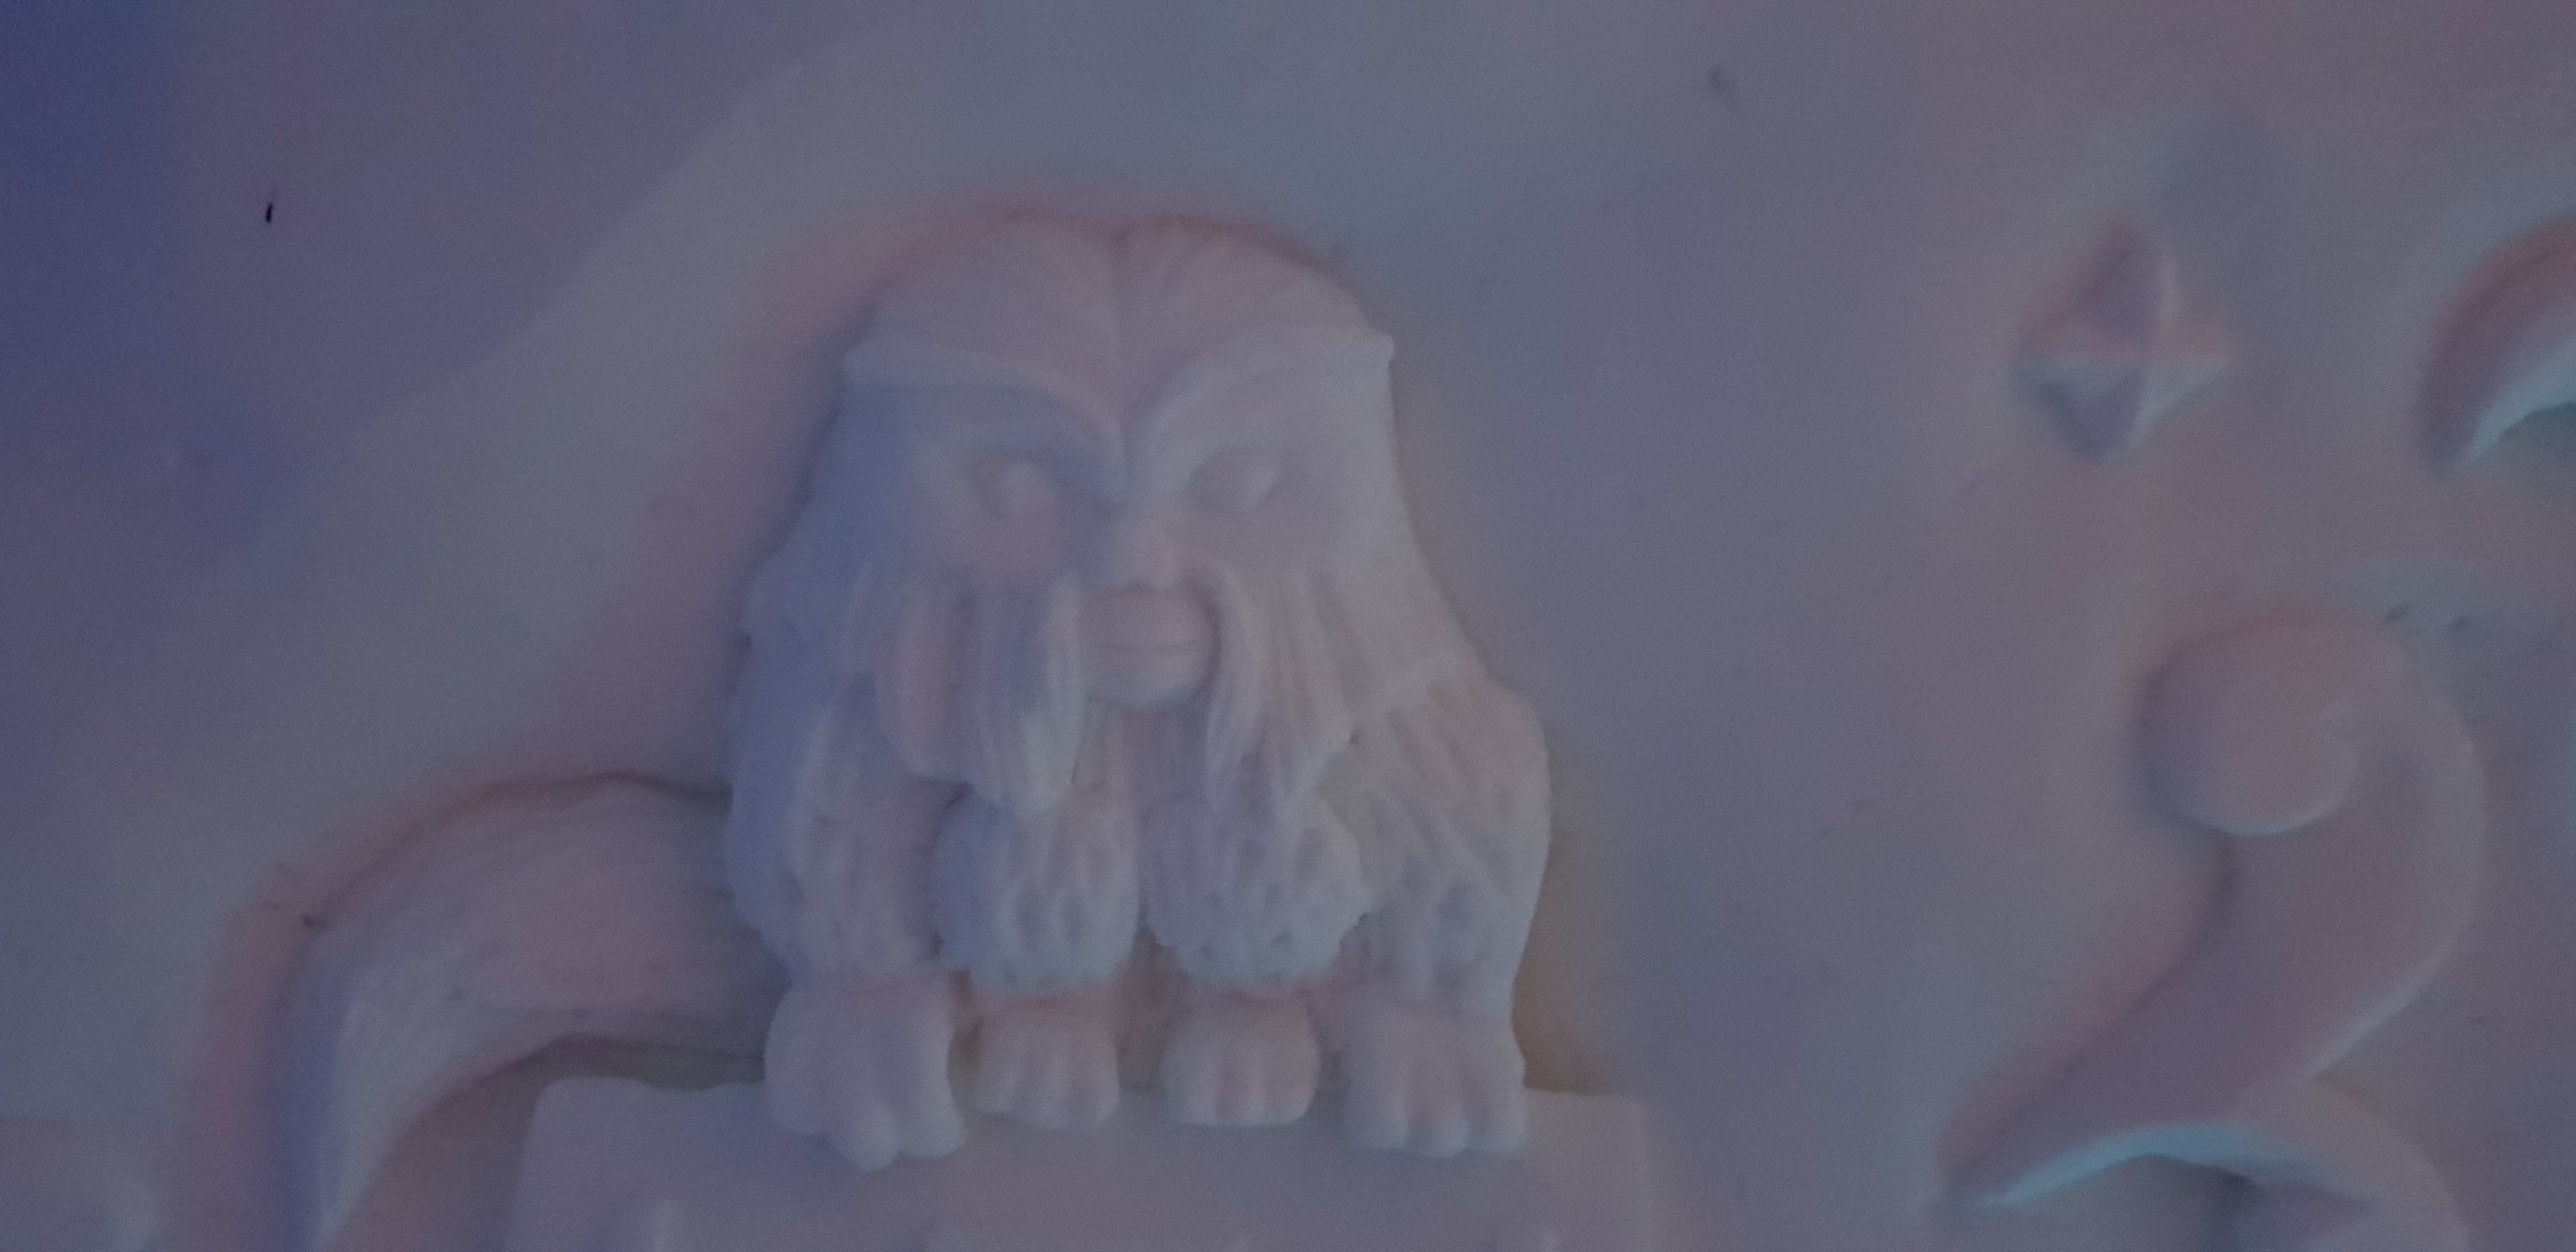 The Ice Hotel contains a carving of a Demiguise.